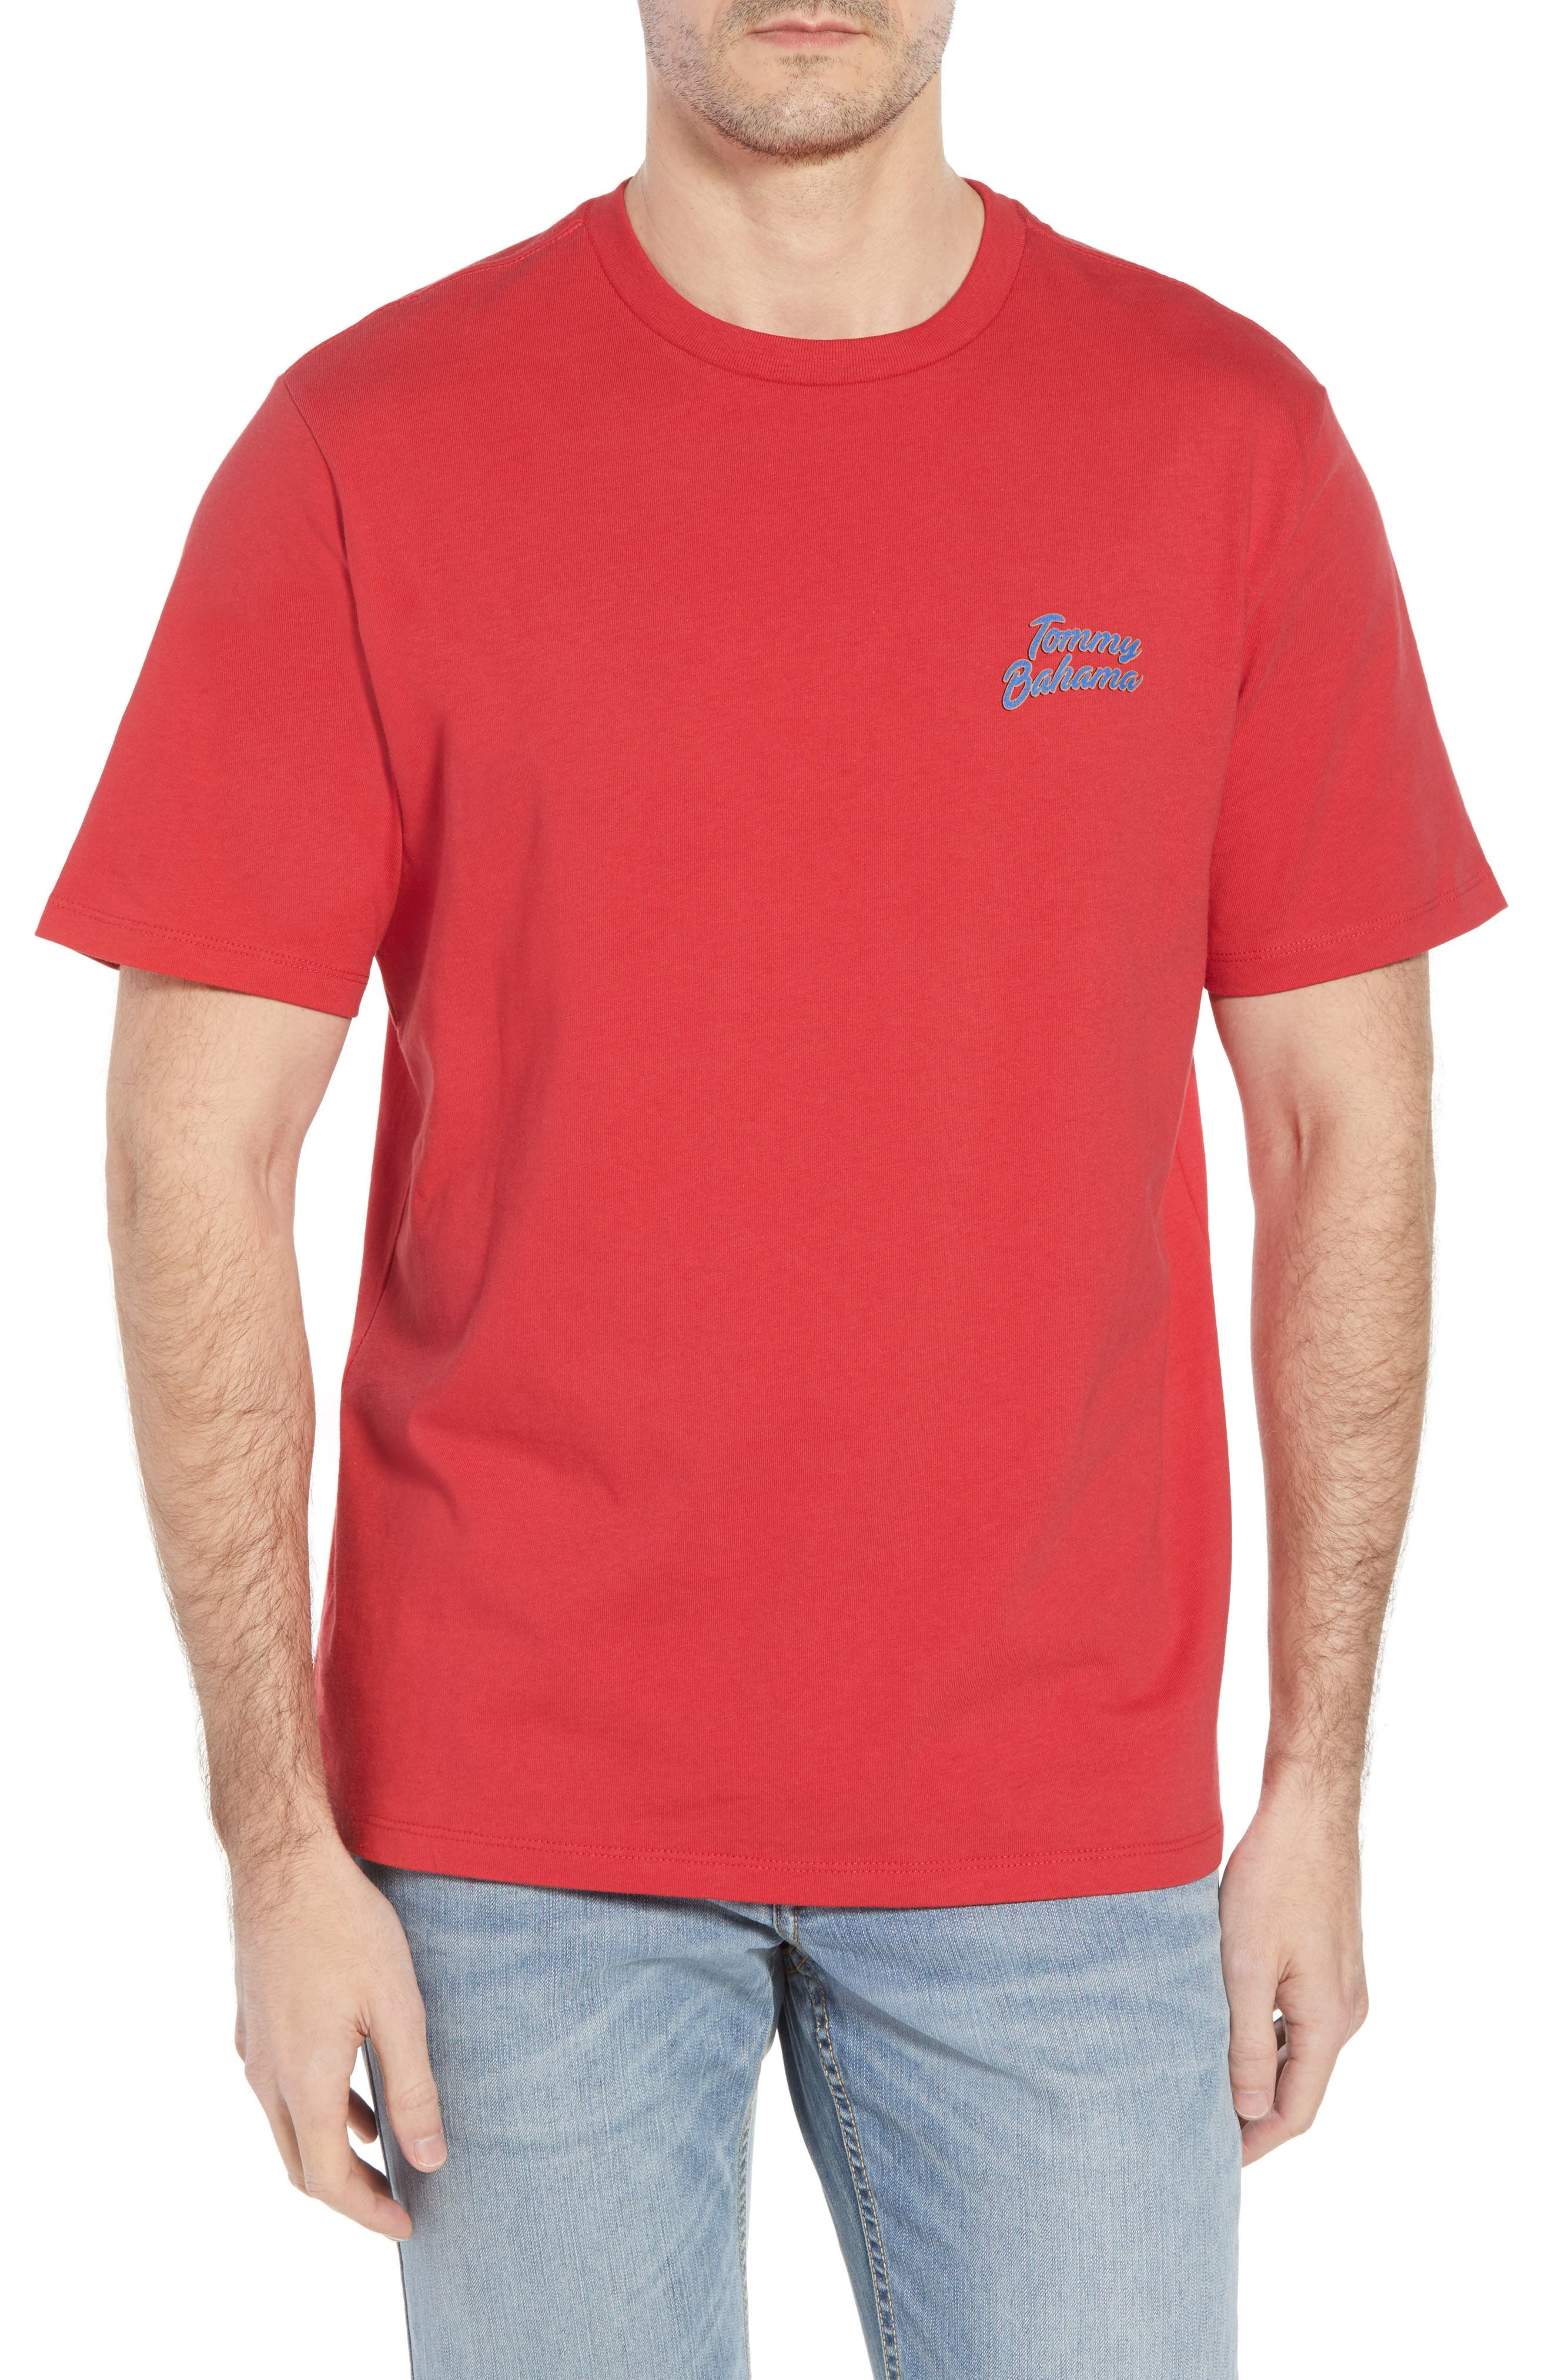 Thirst Base Graphic T-Shirt,                             Main thumbnail 1, color,                             LUCKY RED